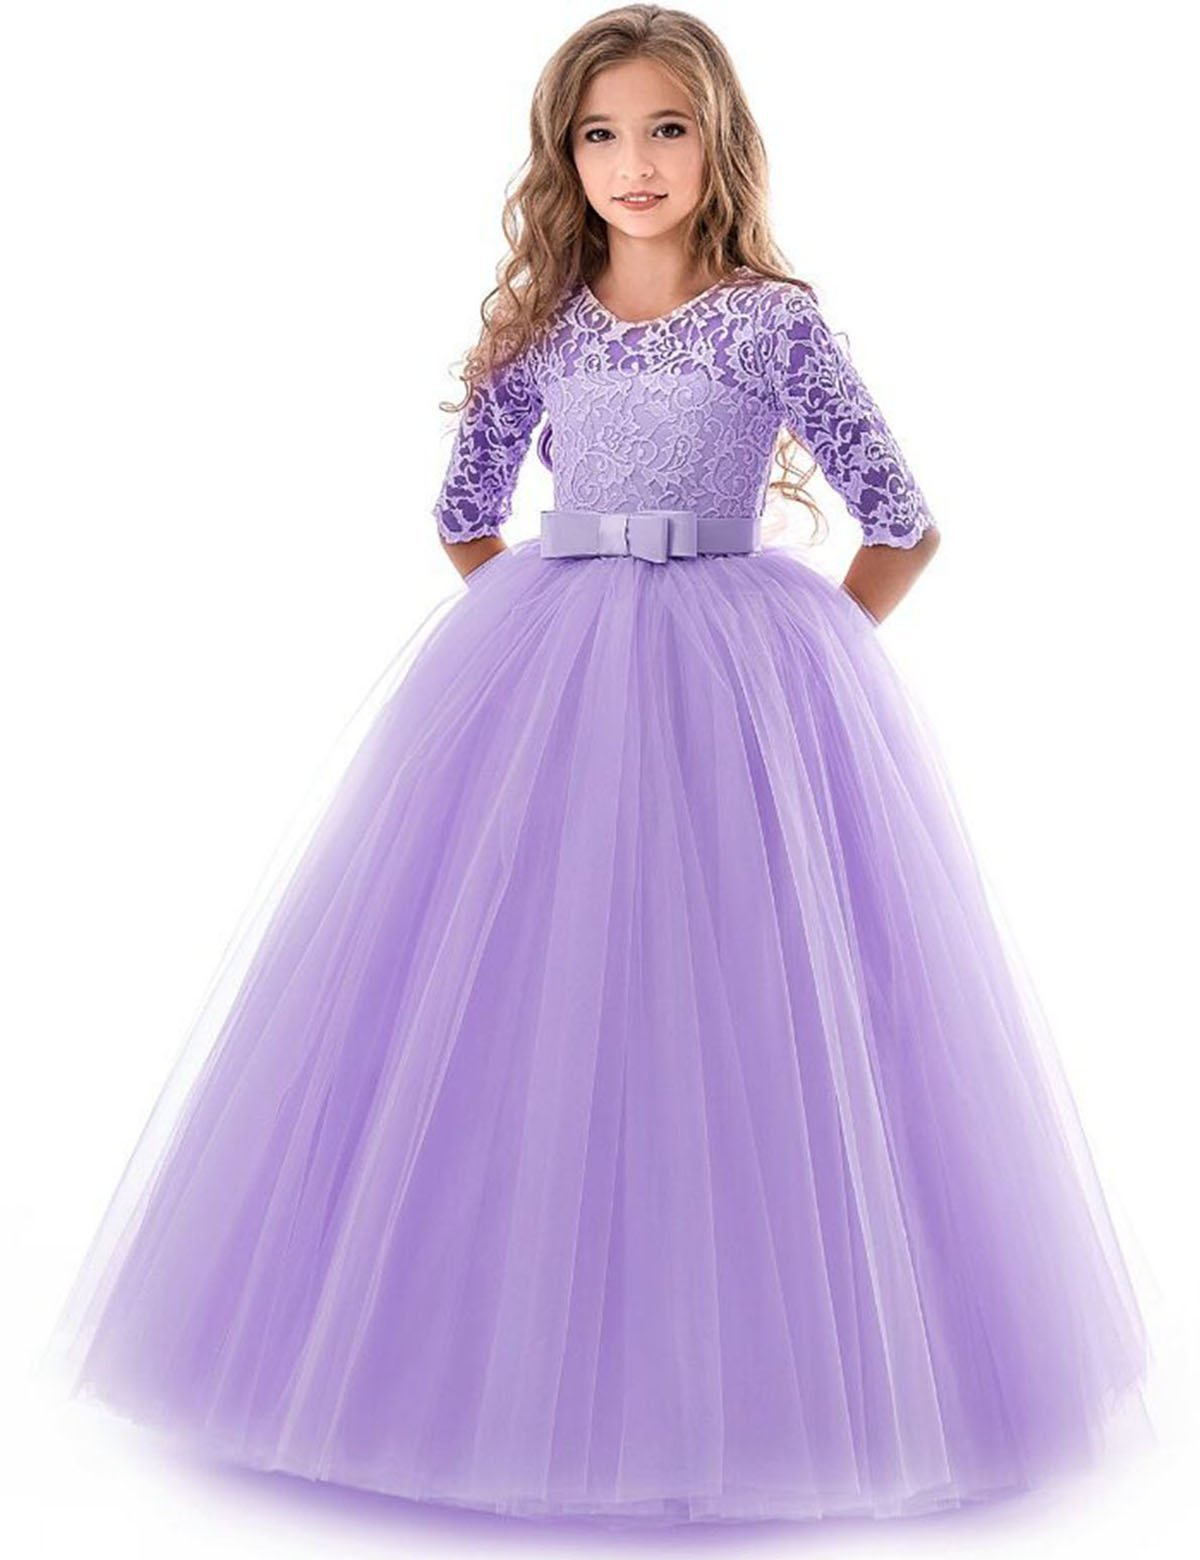 NNJXD Girls Pageant Embroidery Ball Gown Princess Wedding Dress Size (130) 6-7 Years Purple